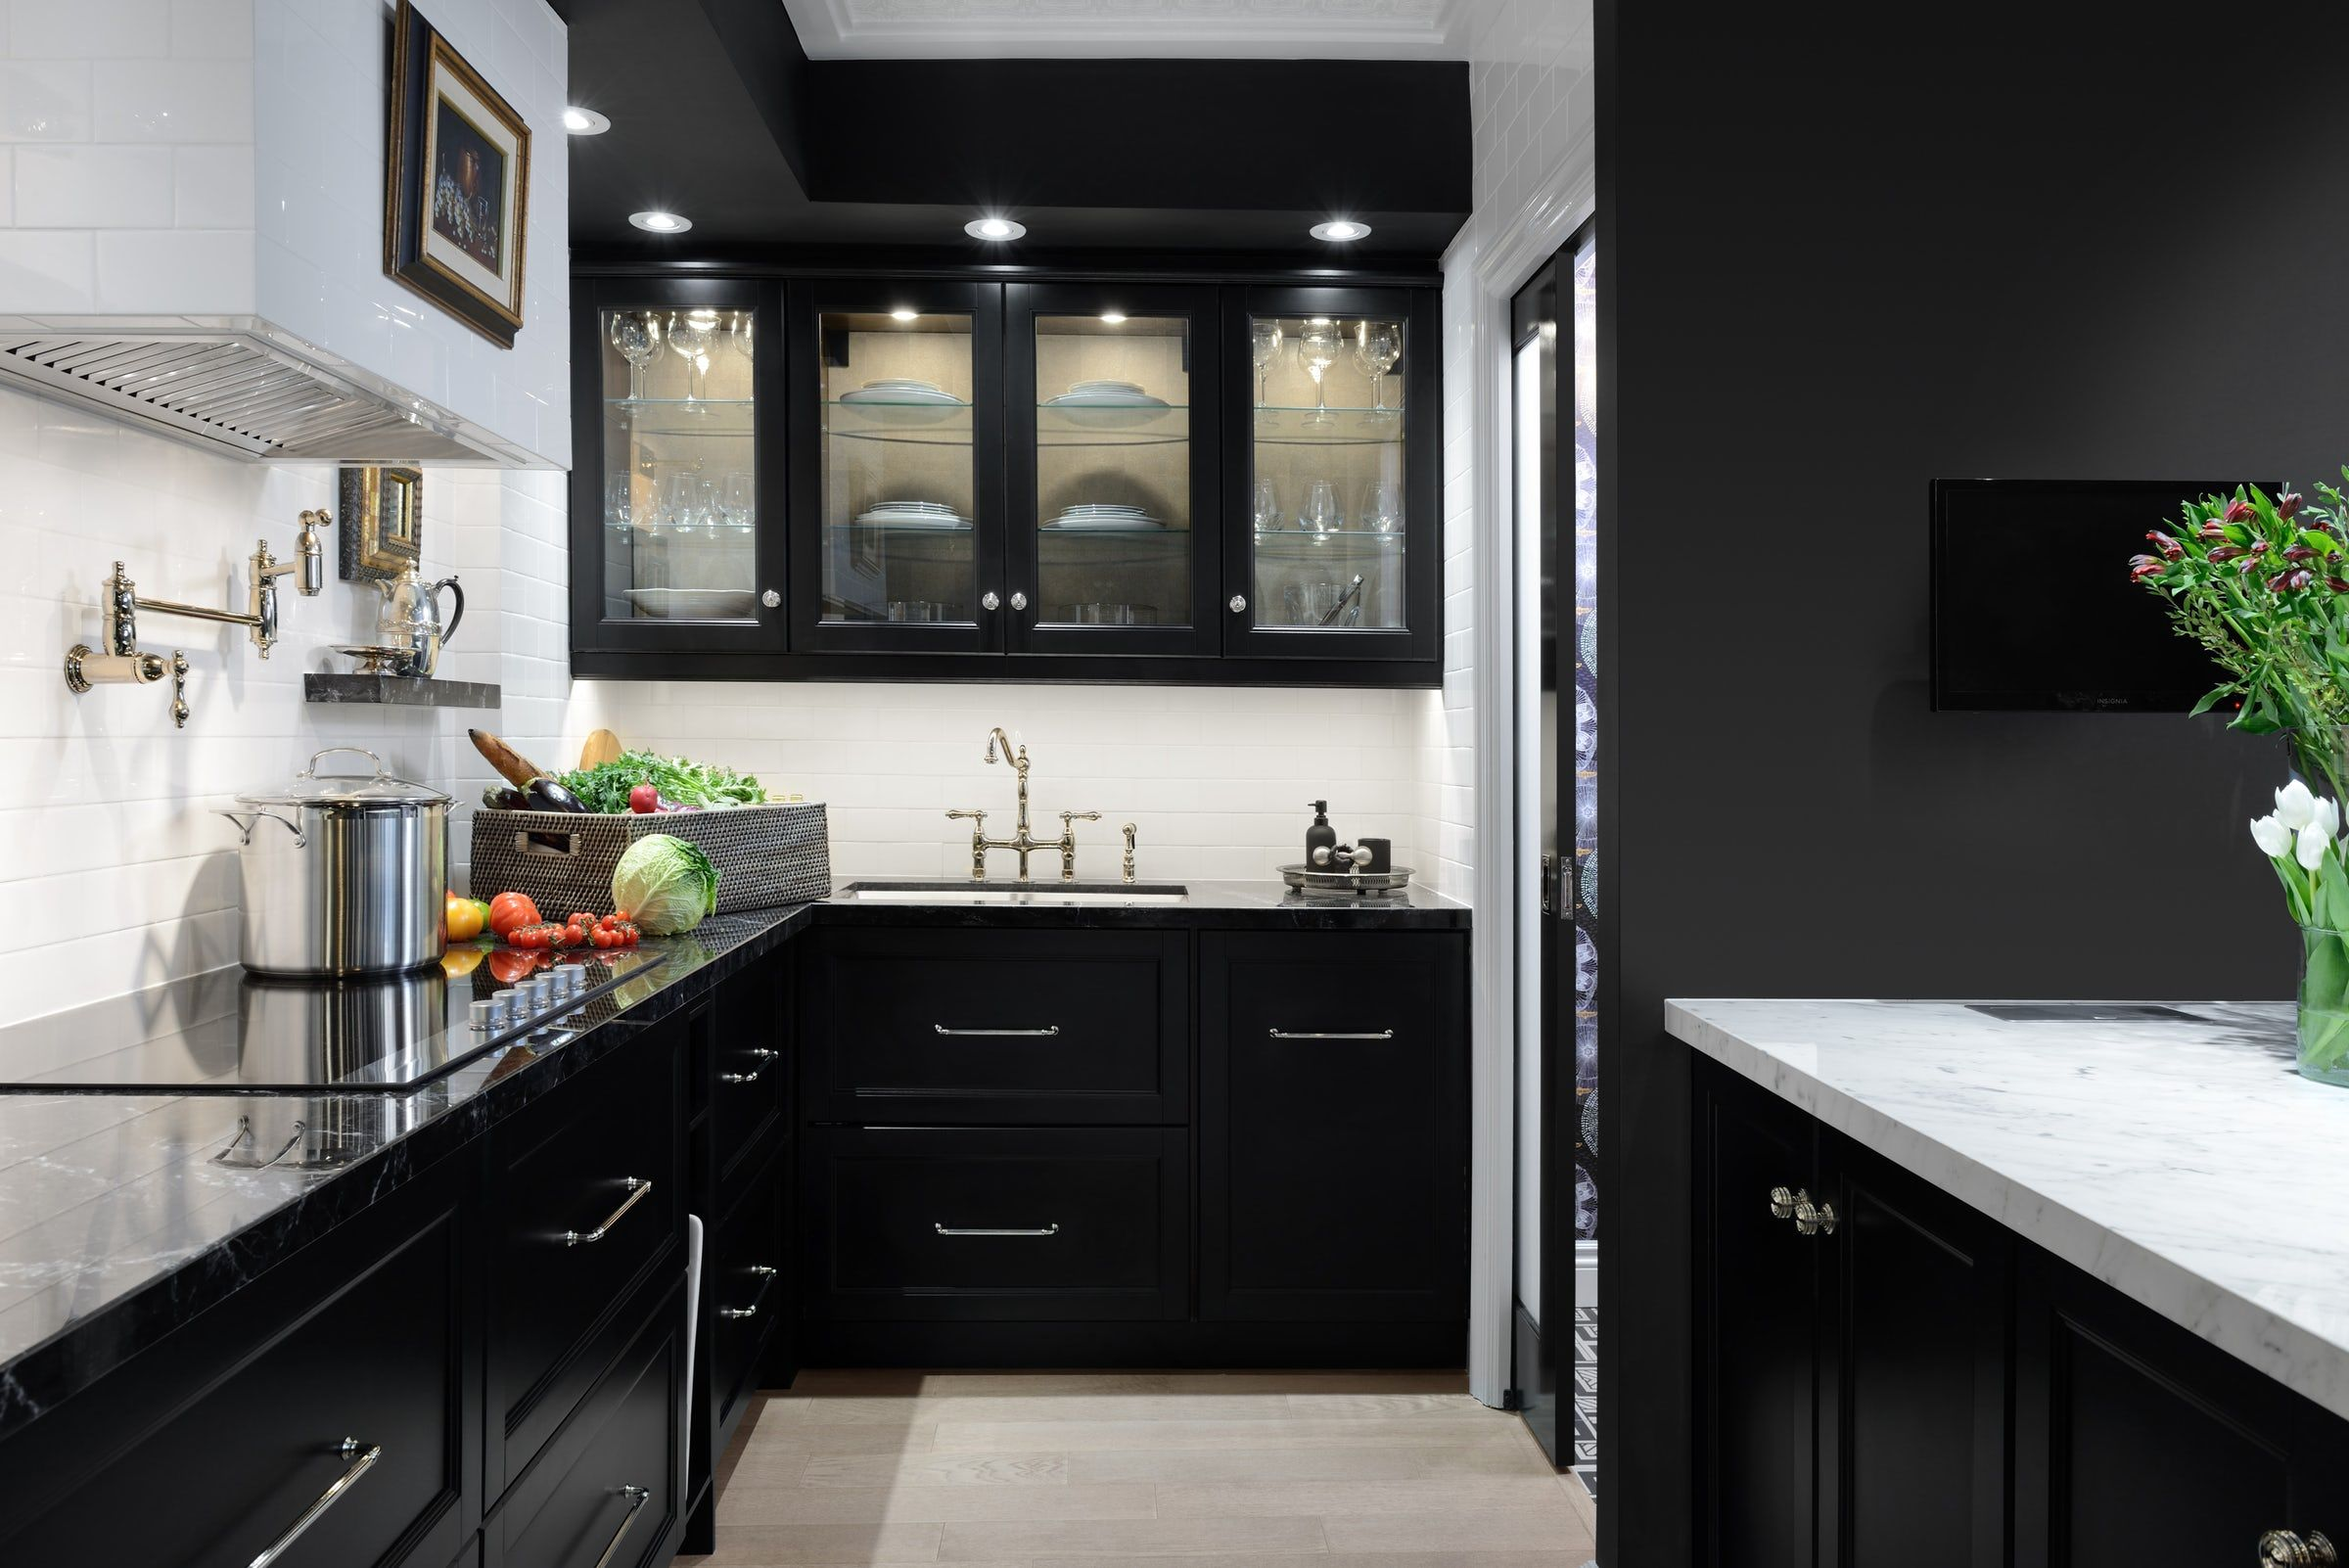 30 sophisticated black kitchen cabinets kitchen designs with black rh elledecor com kitchen tiles black and white design black and white kitchen design ideas